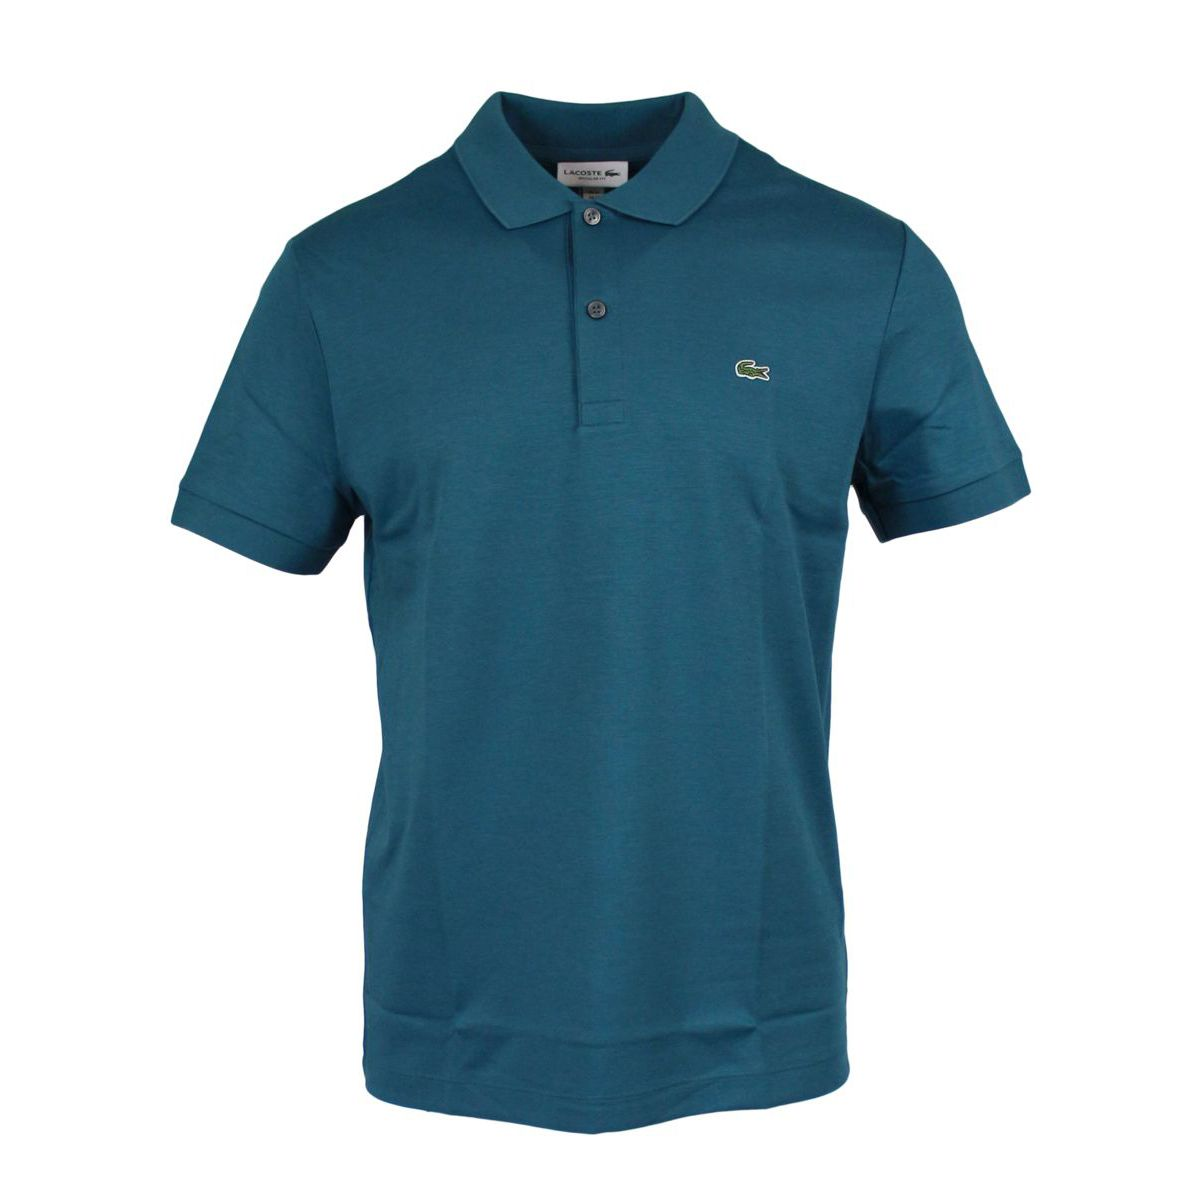 Regular Jersey Polo Petroleum Lacoste